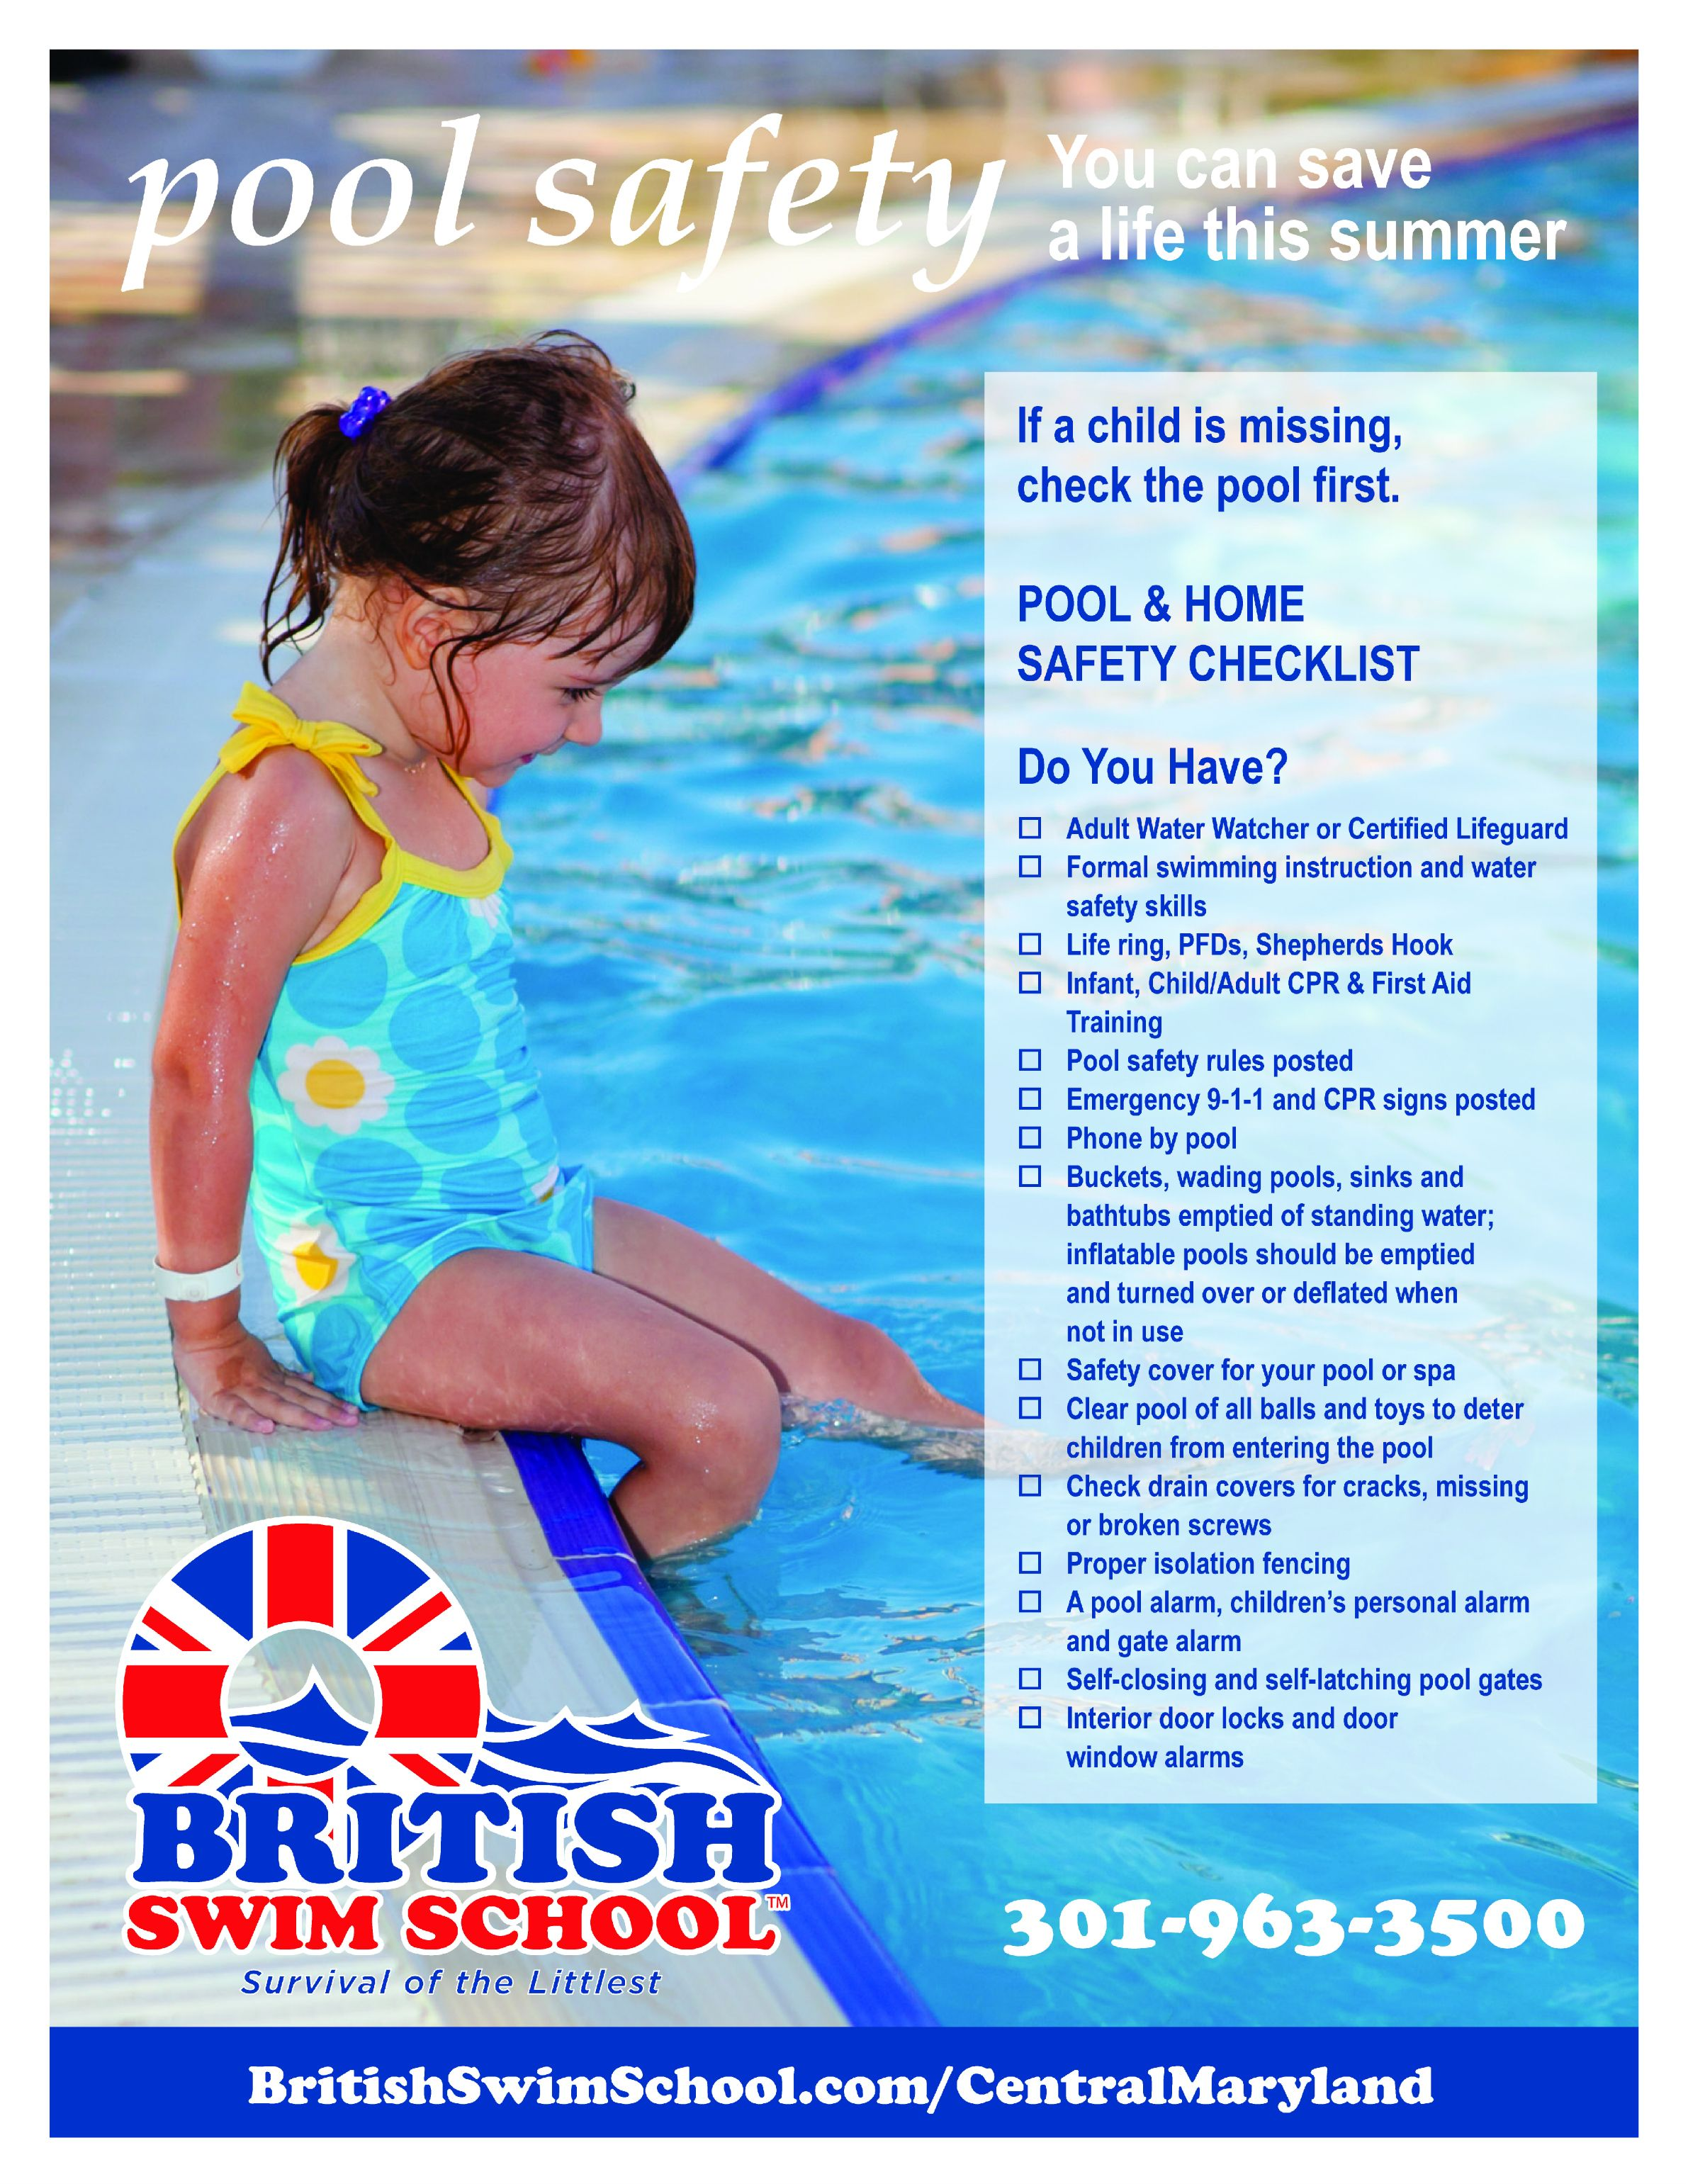 Save A Life This Summer With These Pool Safety Tips From